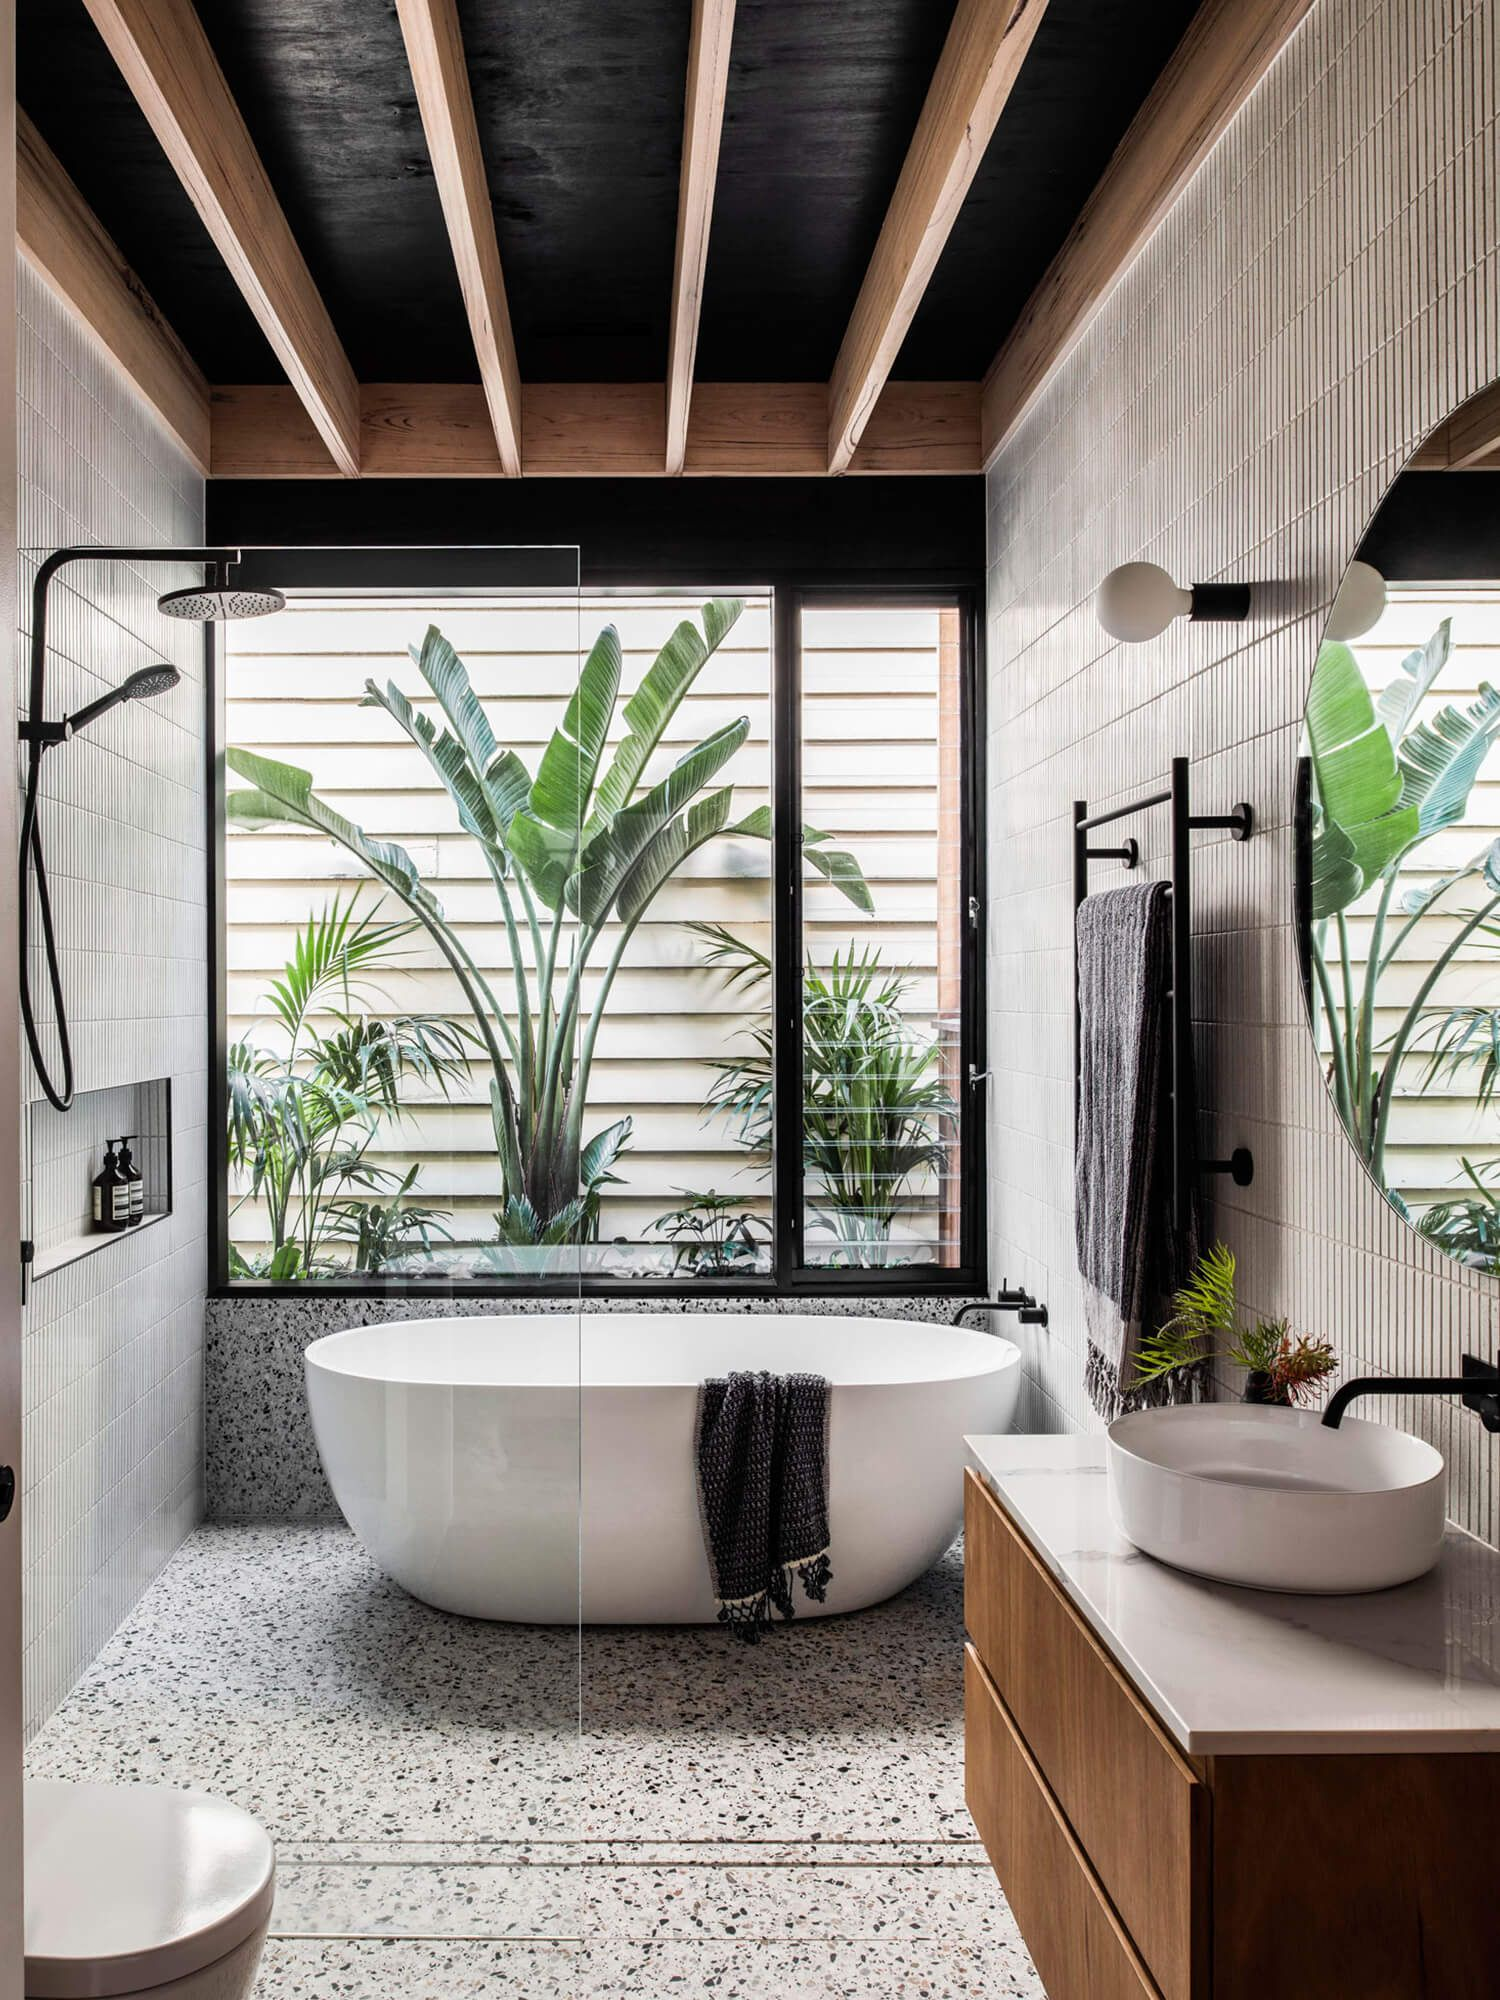 Photo of Bathroom | Silhouette Hytte Elwood by FIGR Architecture Studio | Spaces | est living